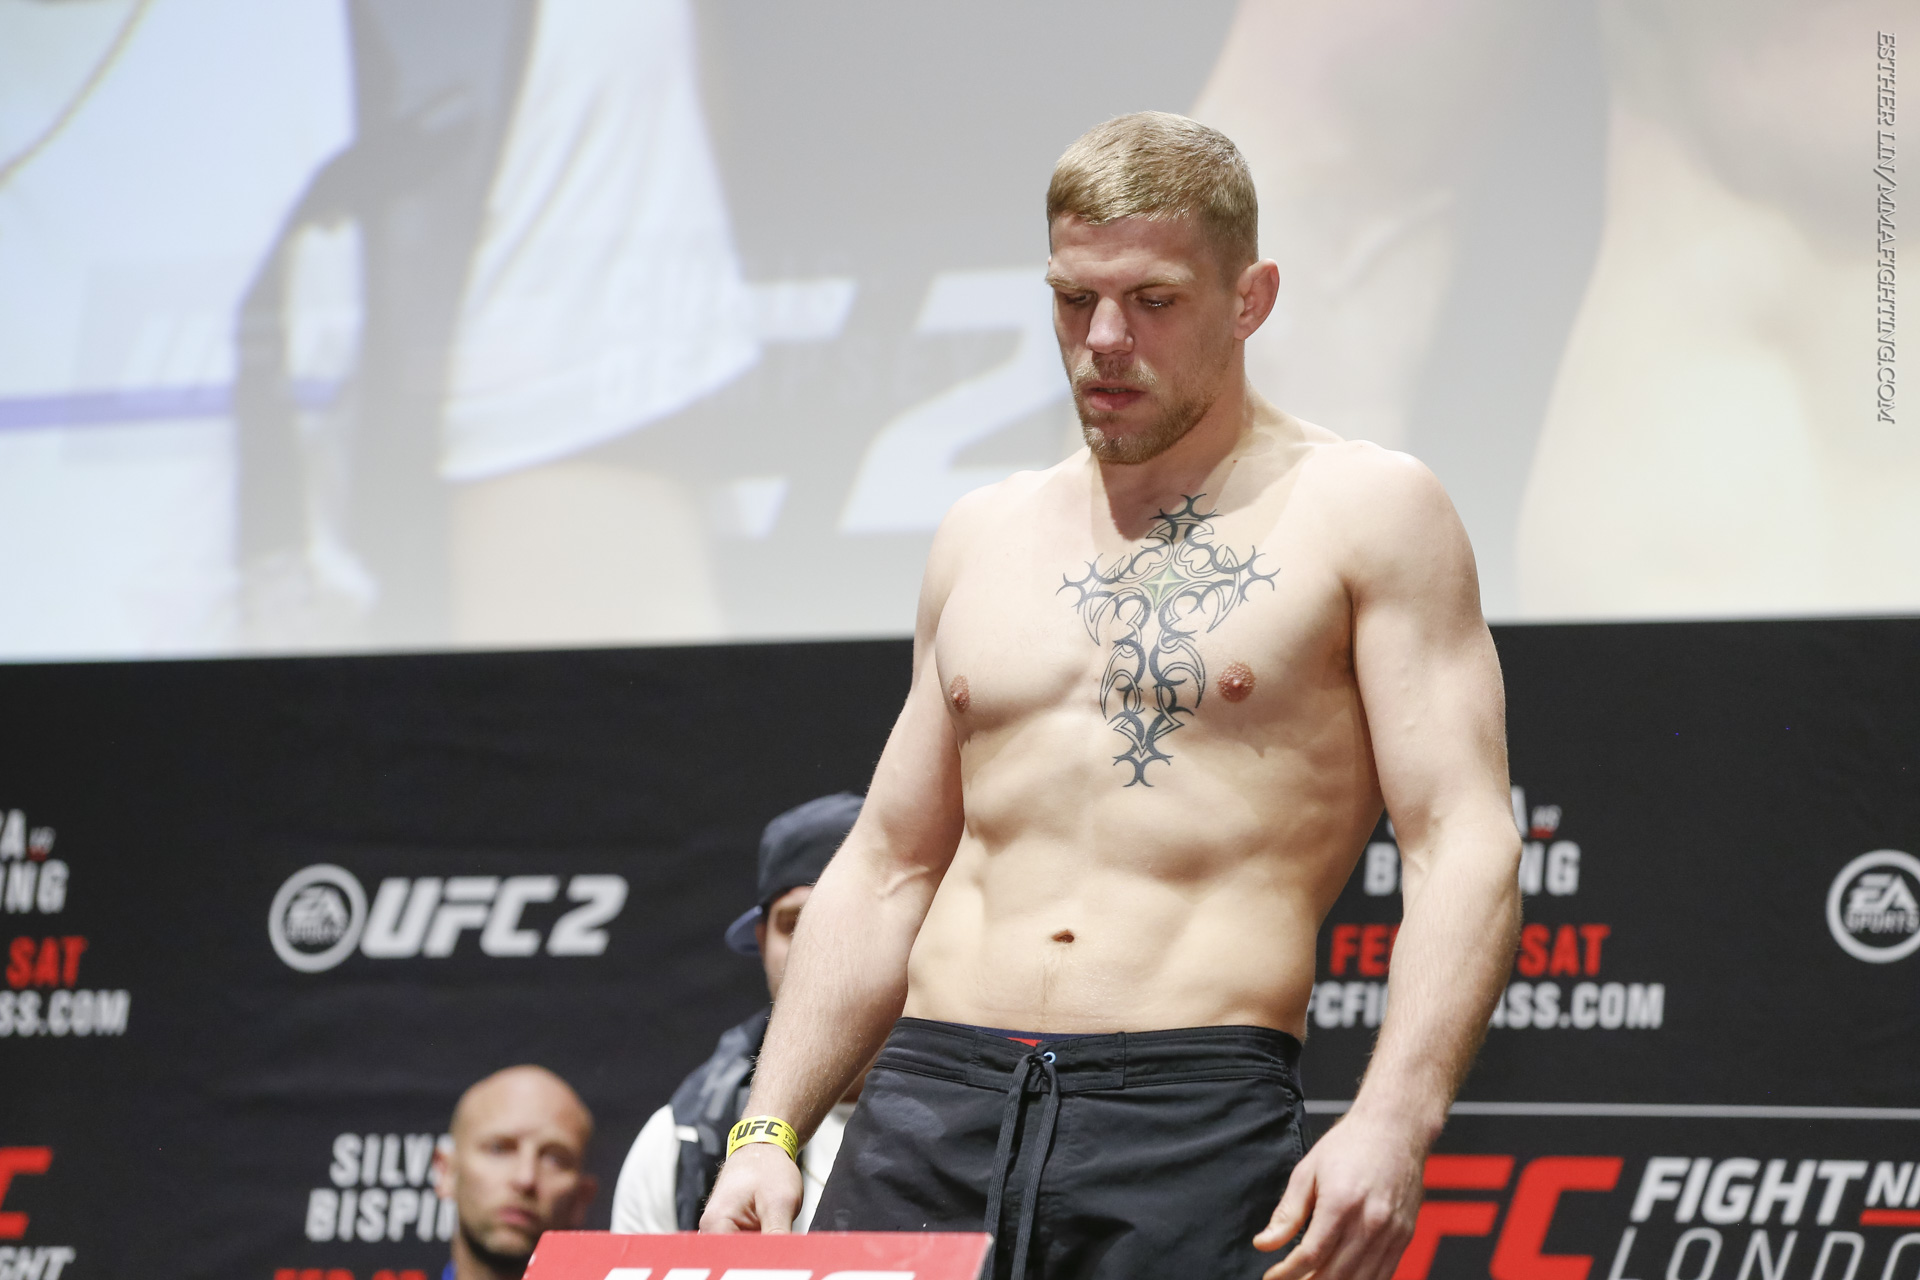 UFC Fight Night 84 London weigh-in photos - MMA Fighting